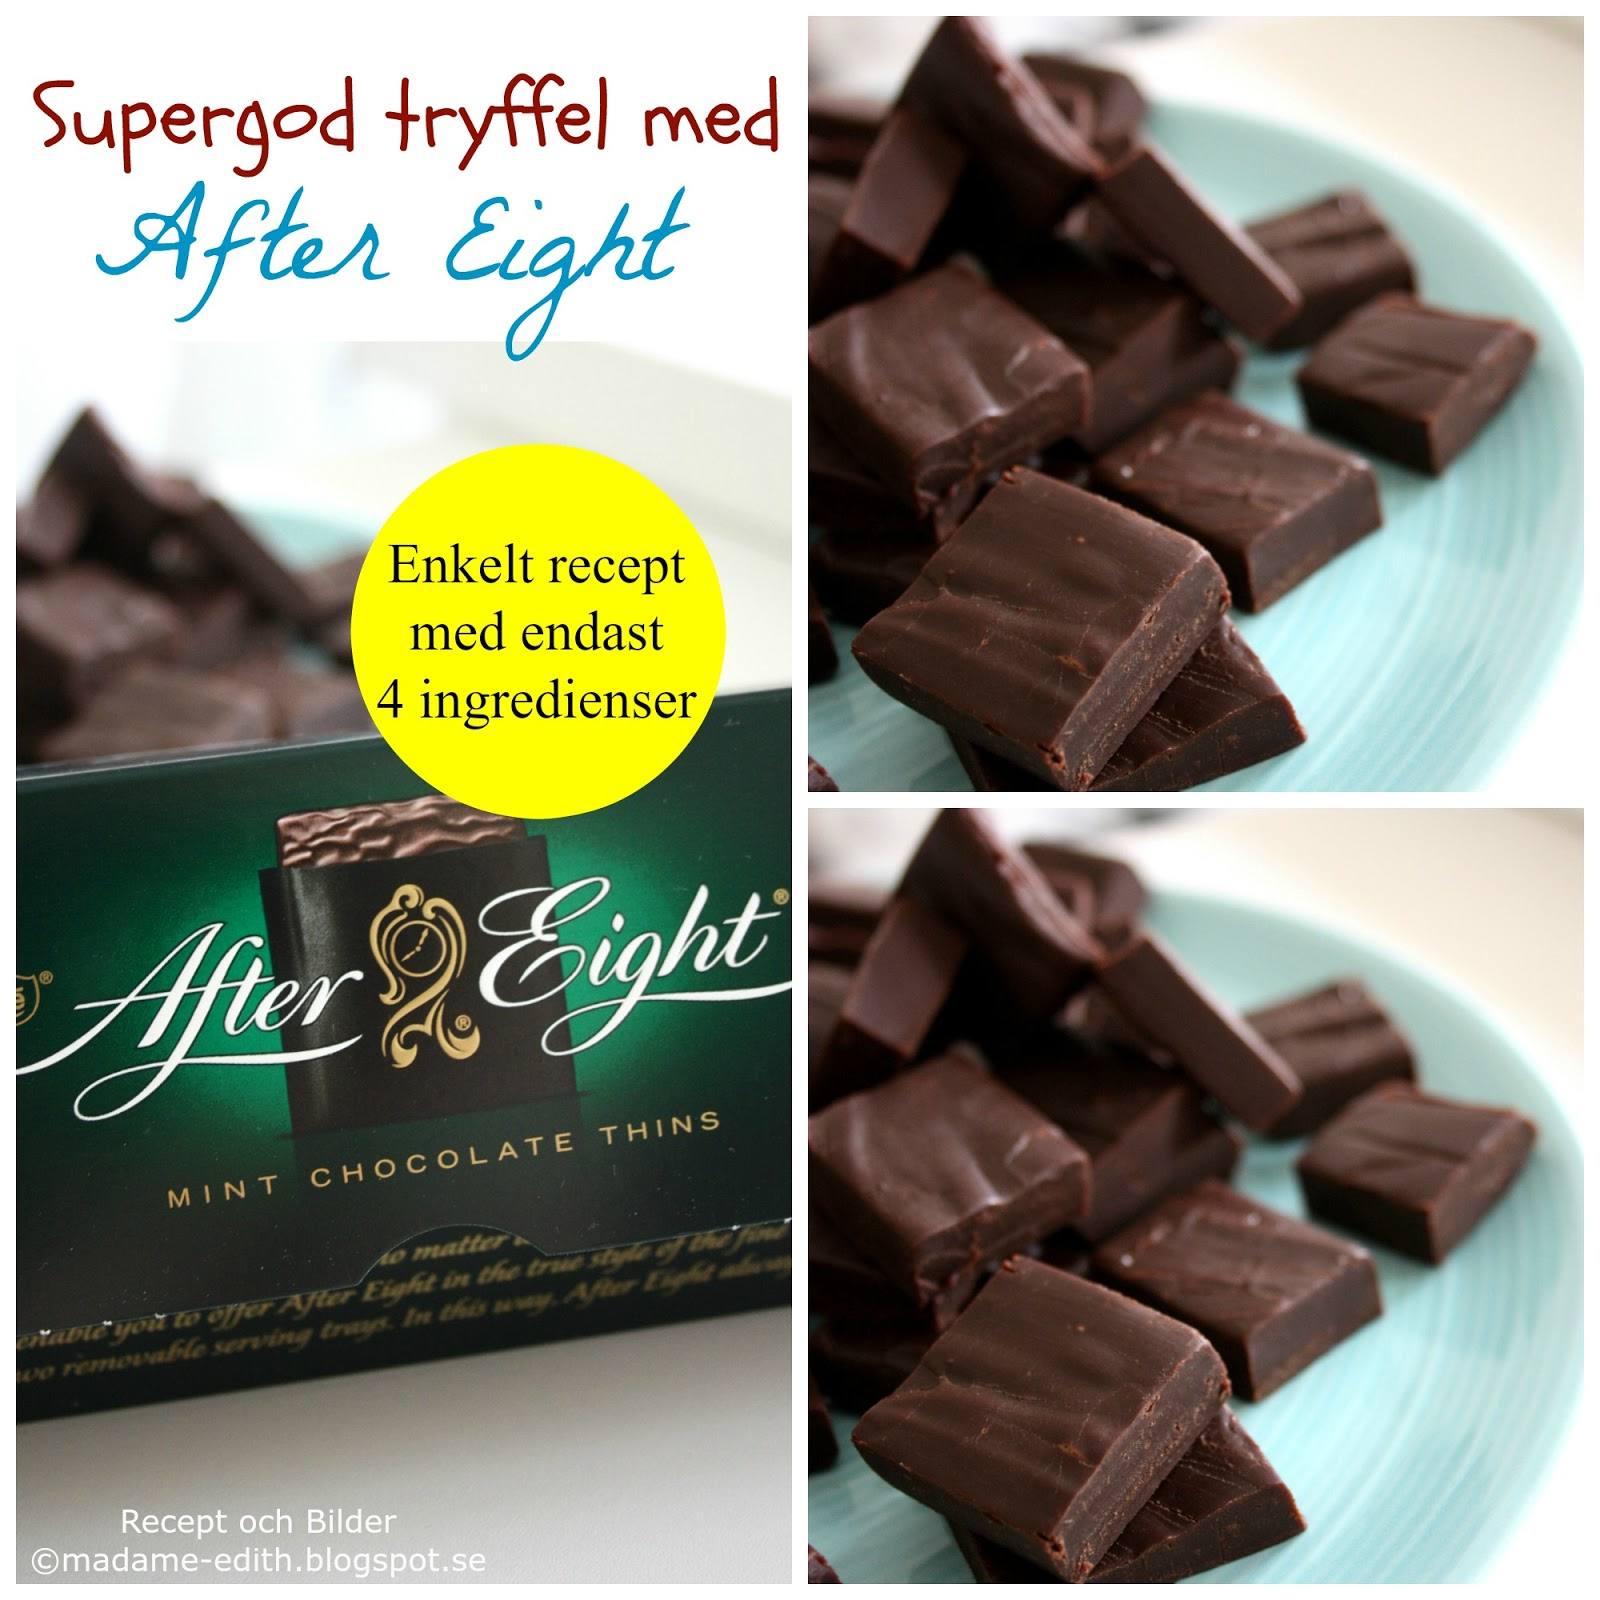 after eight choklad